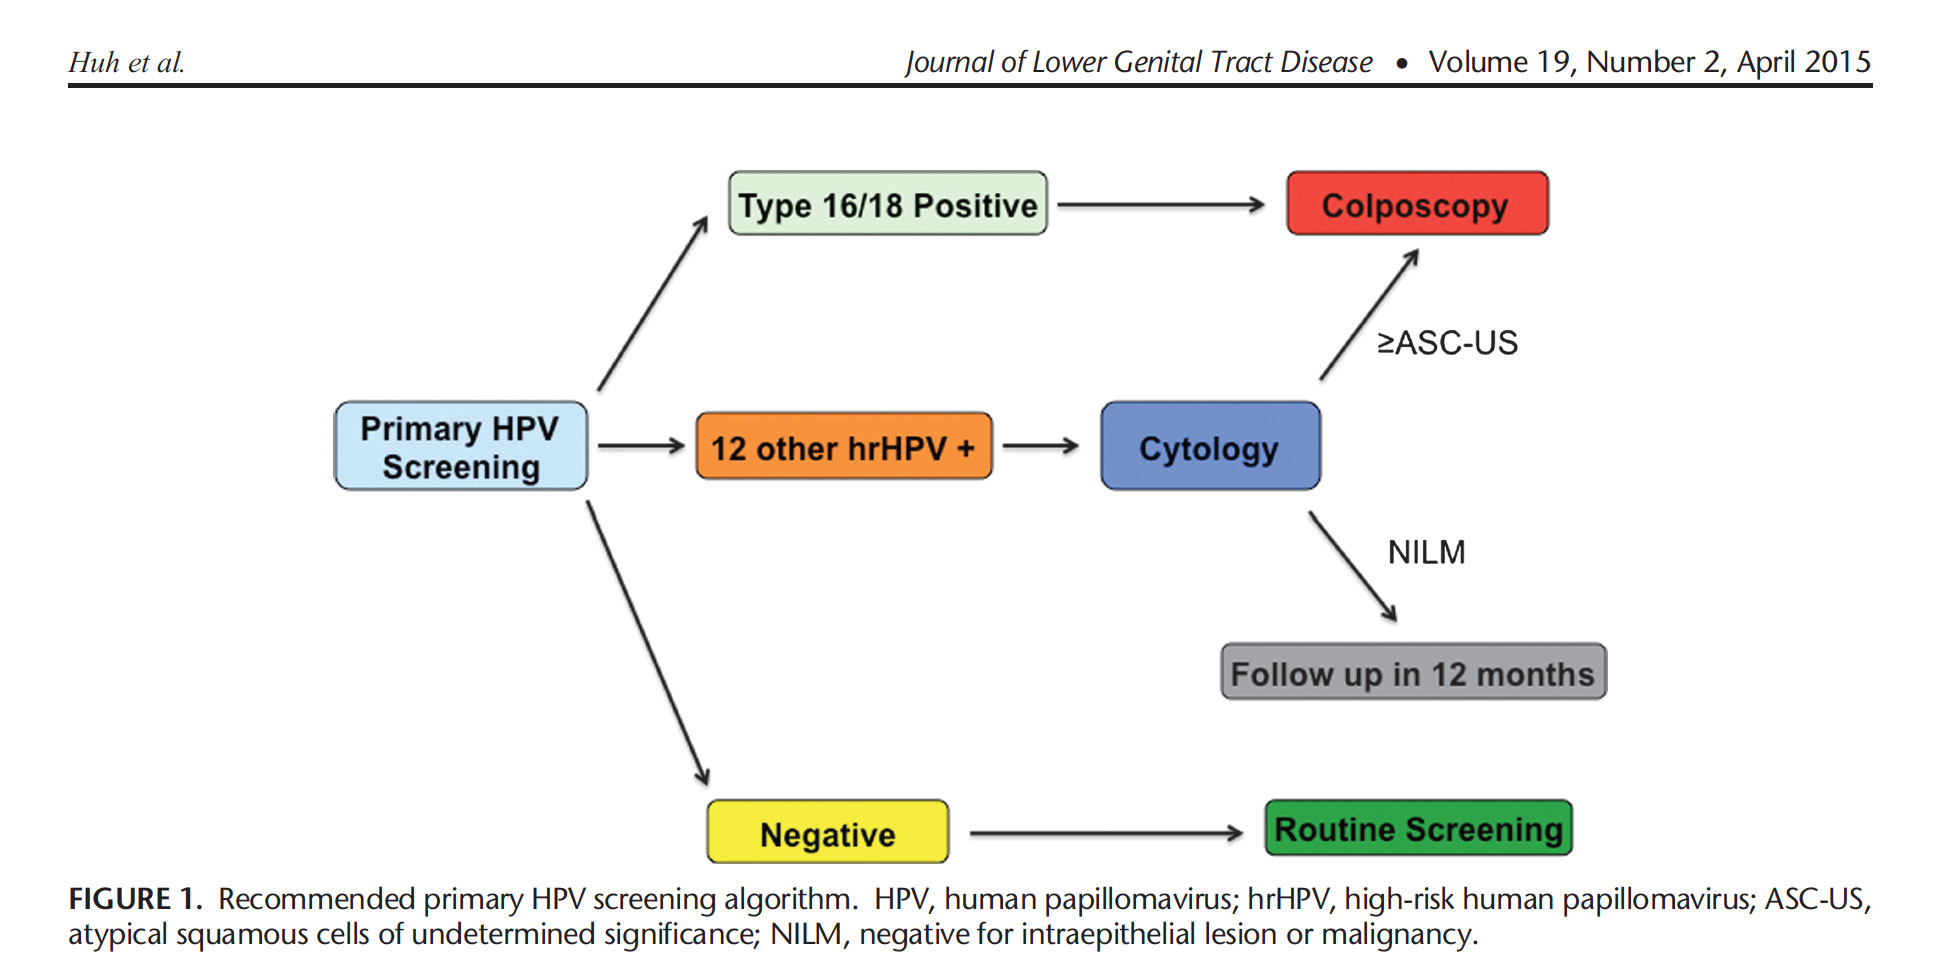 View 2017 Primary Hpv Screening Algorithm